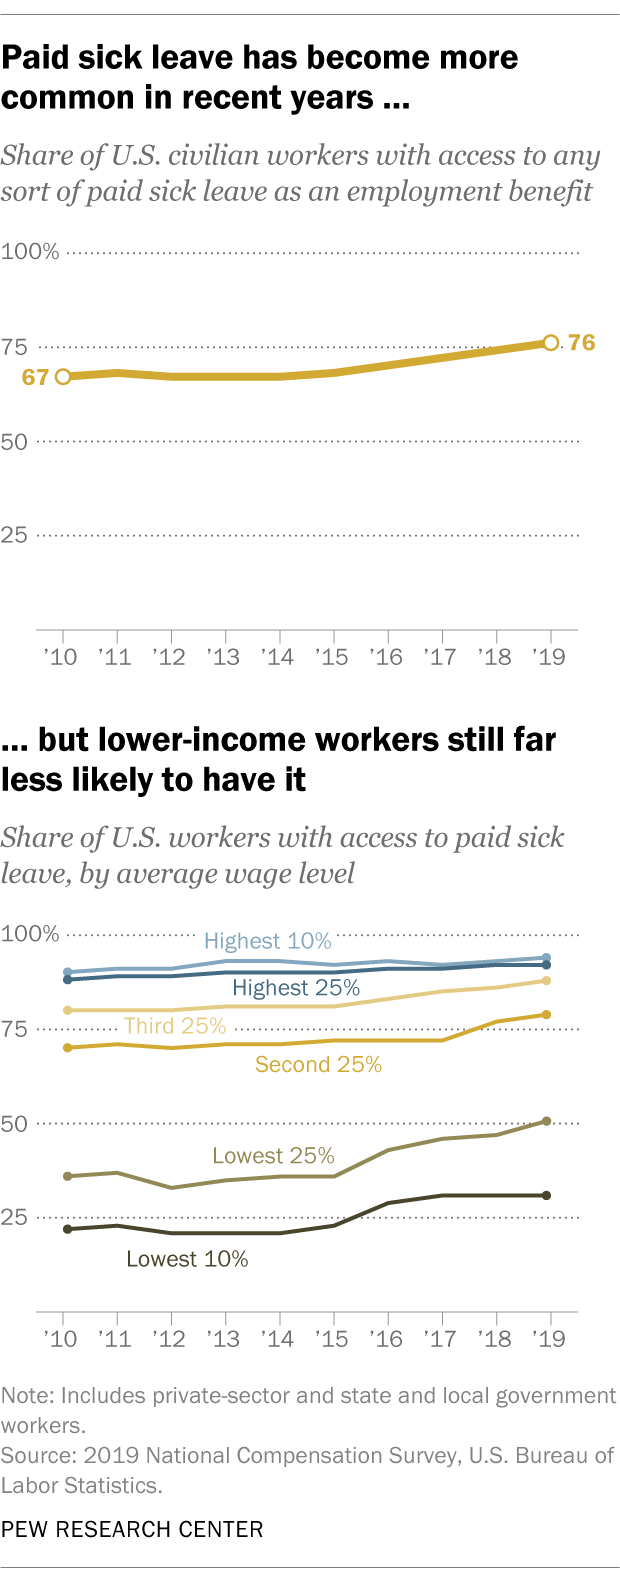 Paid sick leave has become more common in recent years, but lower-income workers still far less likely to have it